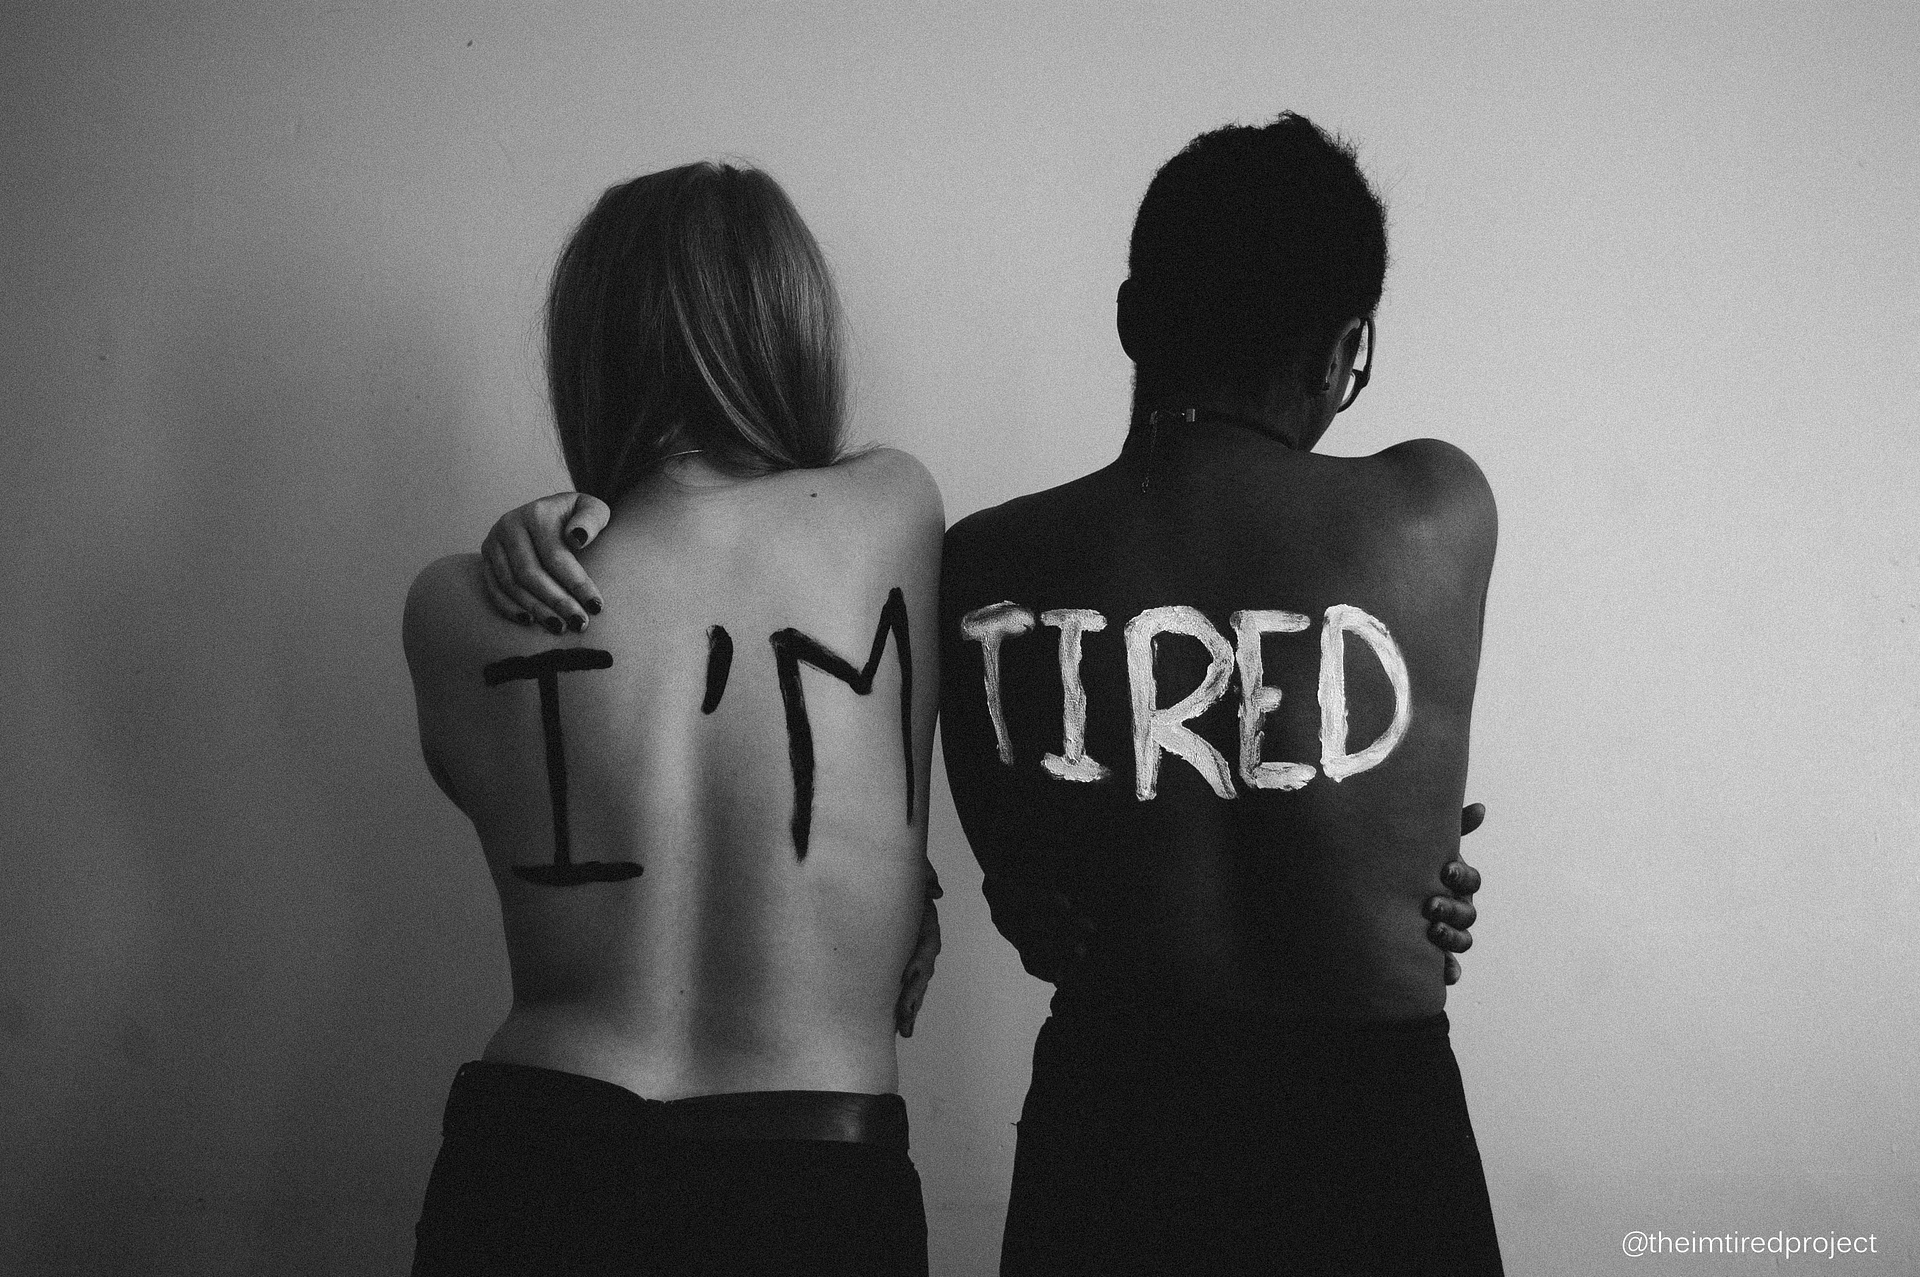 'I'm tired of being the angry black woman' – a photography project tackling microaggressions